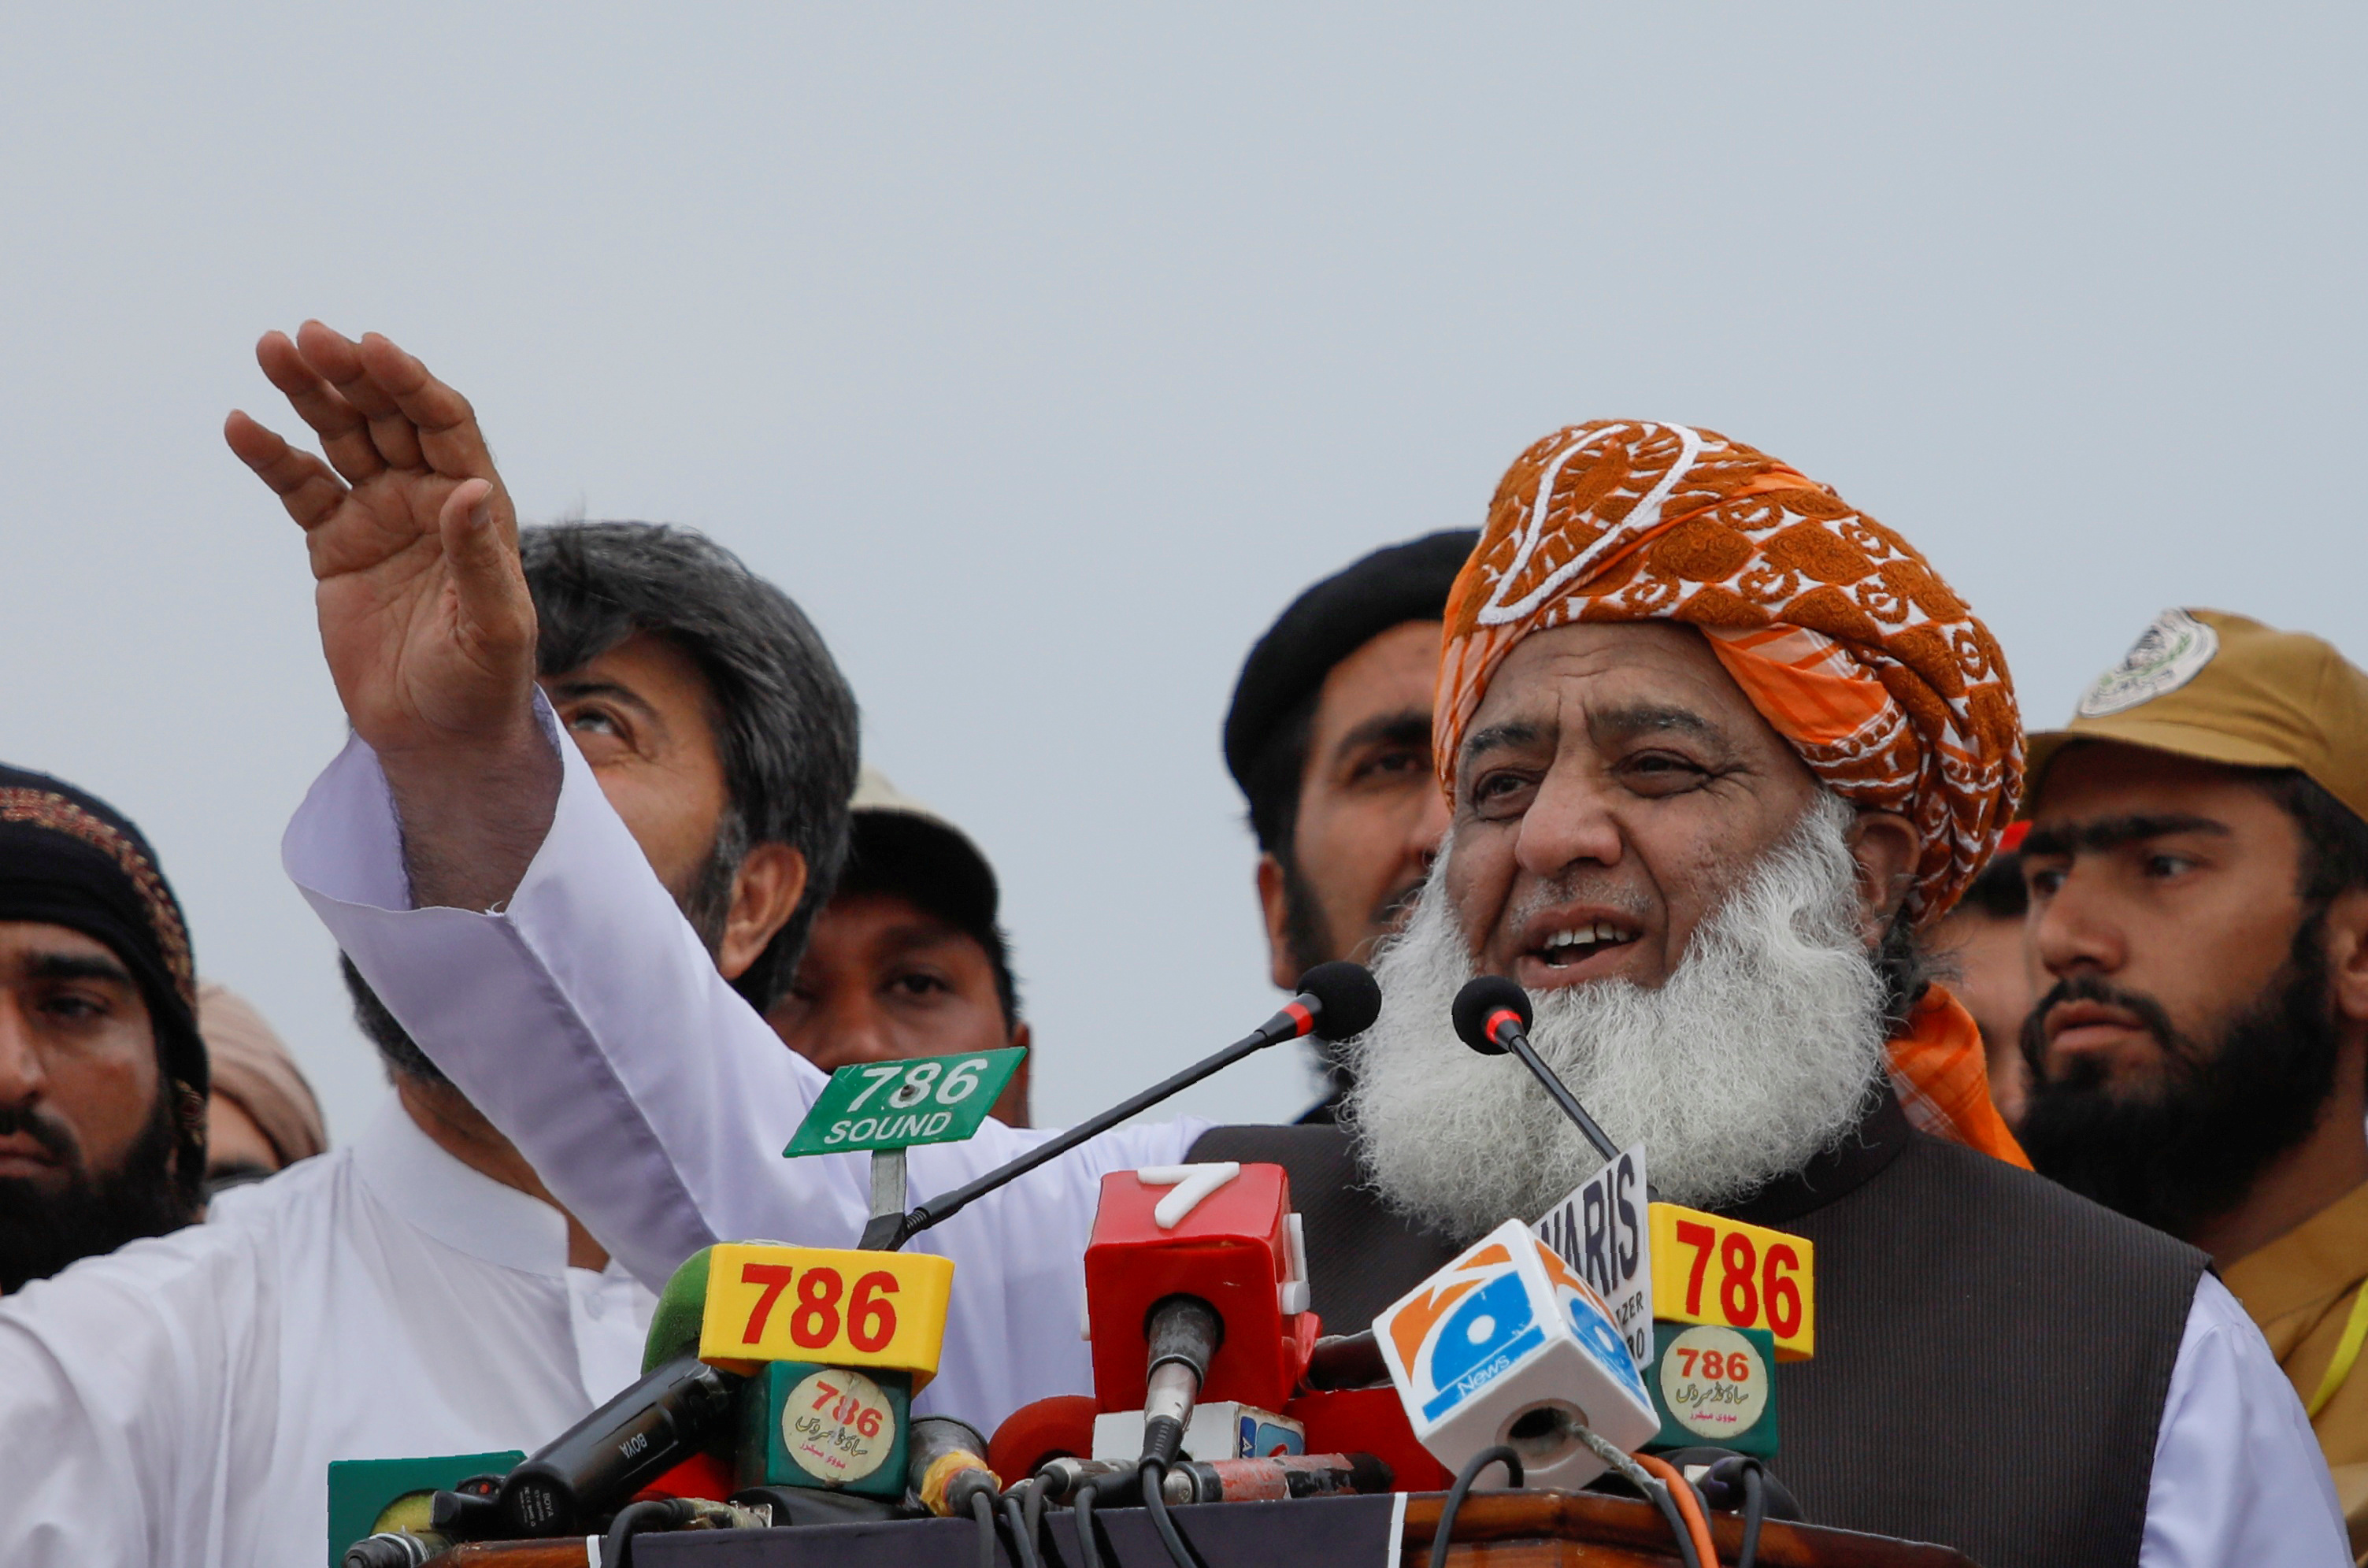 """Fazlur Rehman, President of the Jamiat Ulema-e-Islam (JUI), speaks to the supporters during a countrywide protest called """"Black Day"""" against the government of prime minister Imran Khan, in Peshawar, Pakistan July 25, 2019. REUTERS/Fayaz Aziz - RC1BF67675A0/File Photo"""